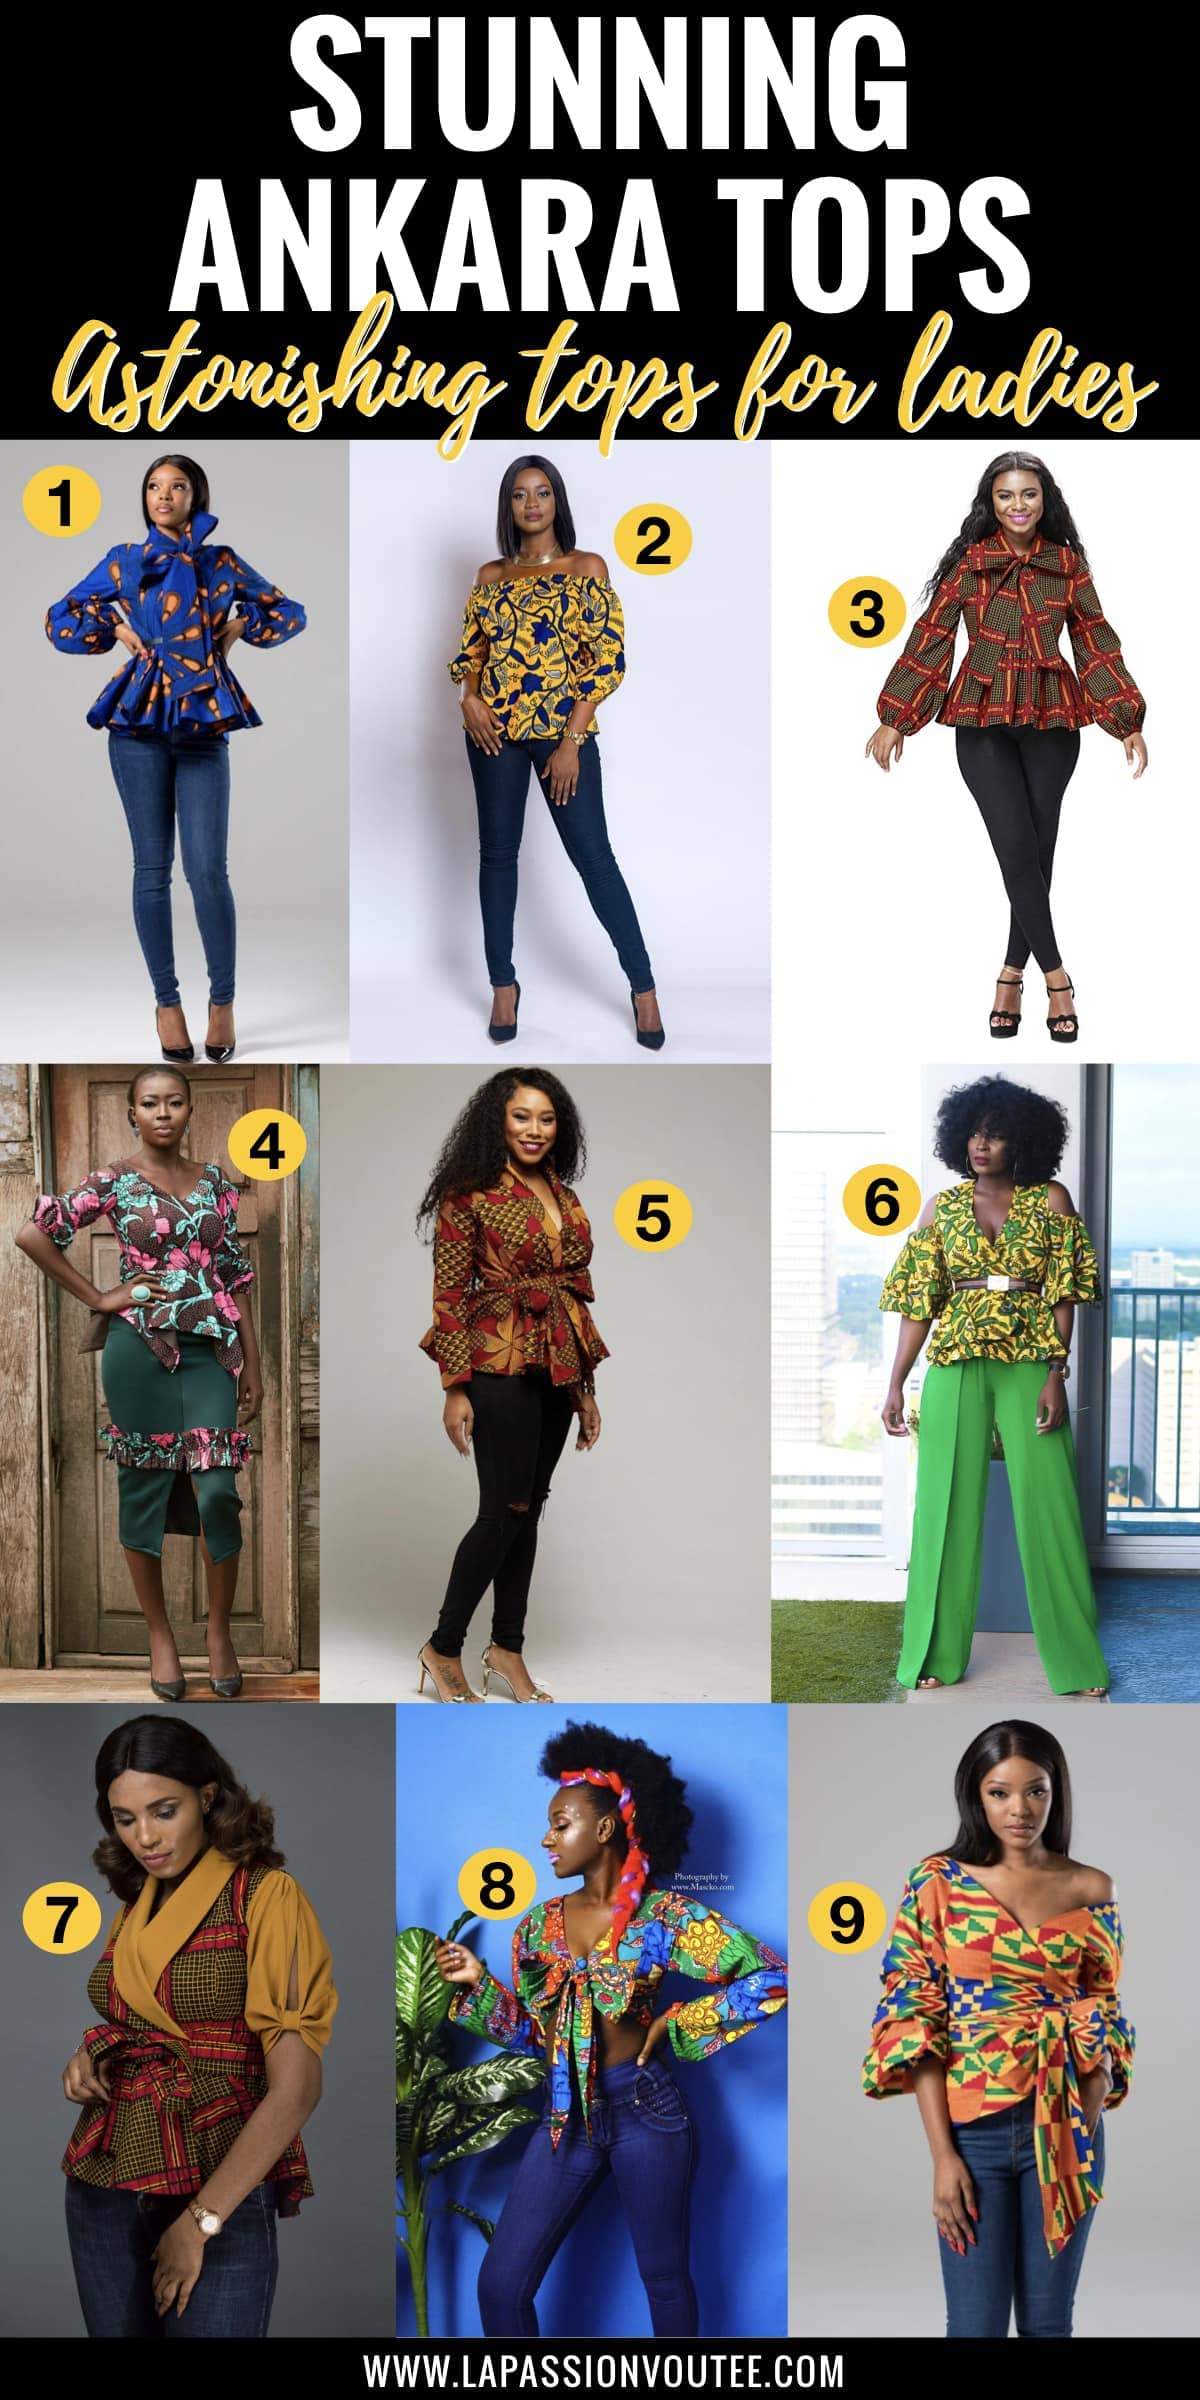 #africanprint #ankarastyles 20 best ankara tops for ladies every African print lover should have in their wardrobe. From affordable ankara peplum tops, and African print crop tops to off the shoulder tops and even more stunning ankara top styles to rock this year. And details on where to African print clothes online for less.